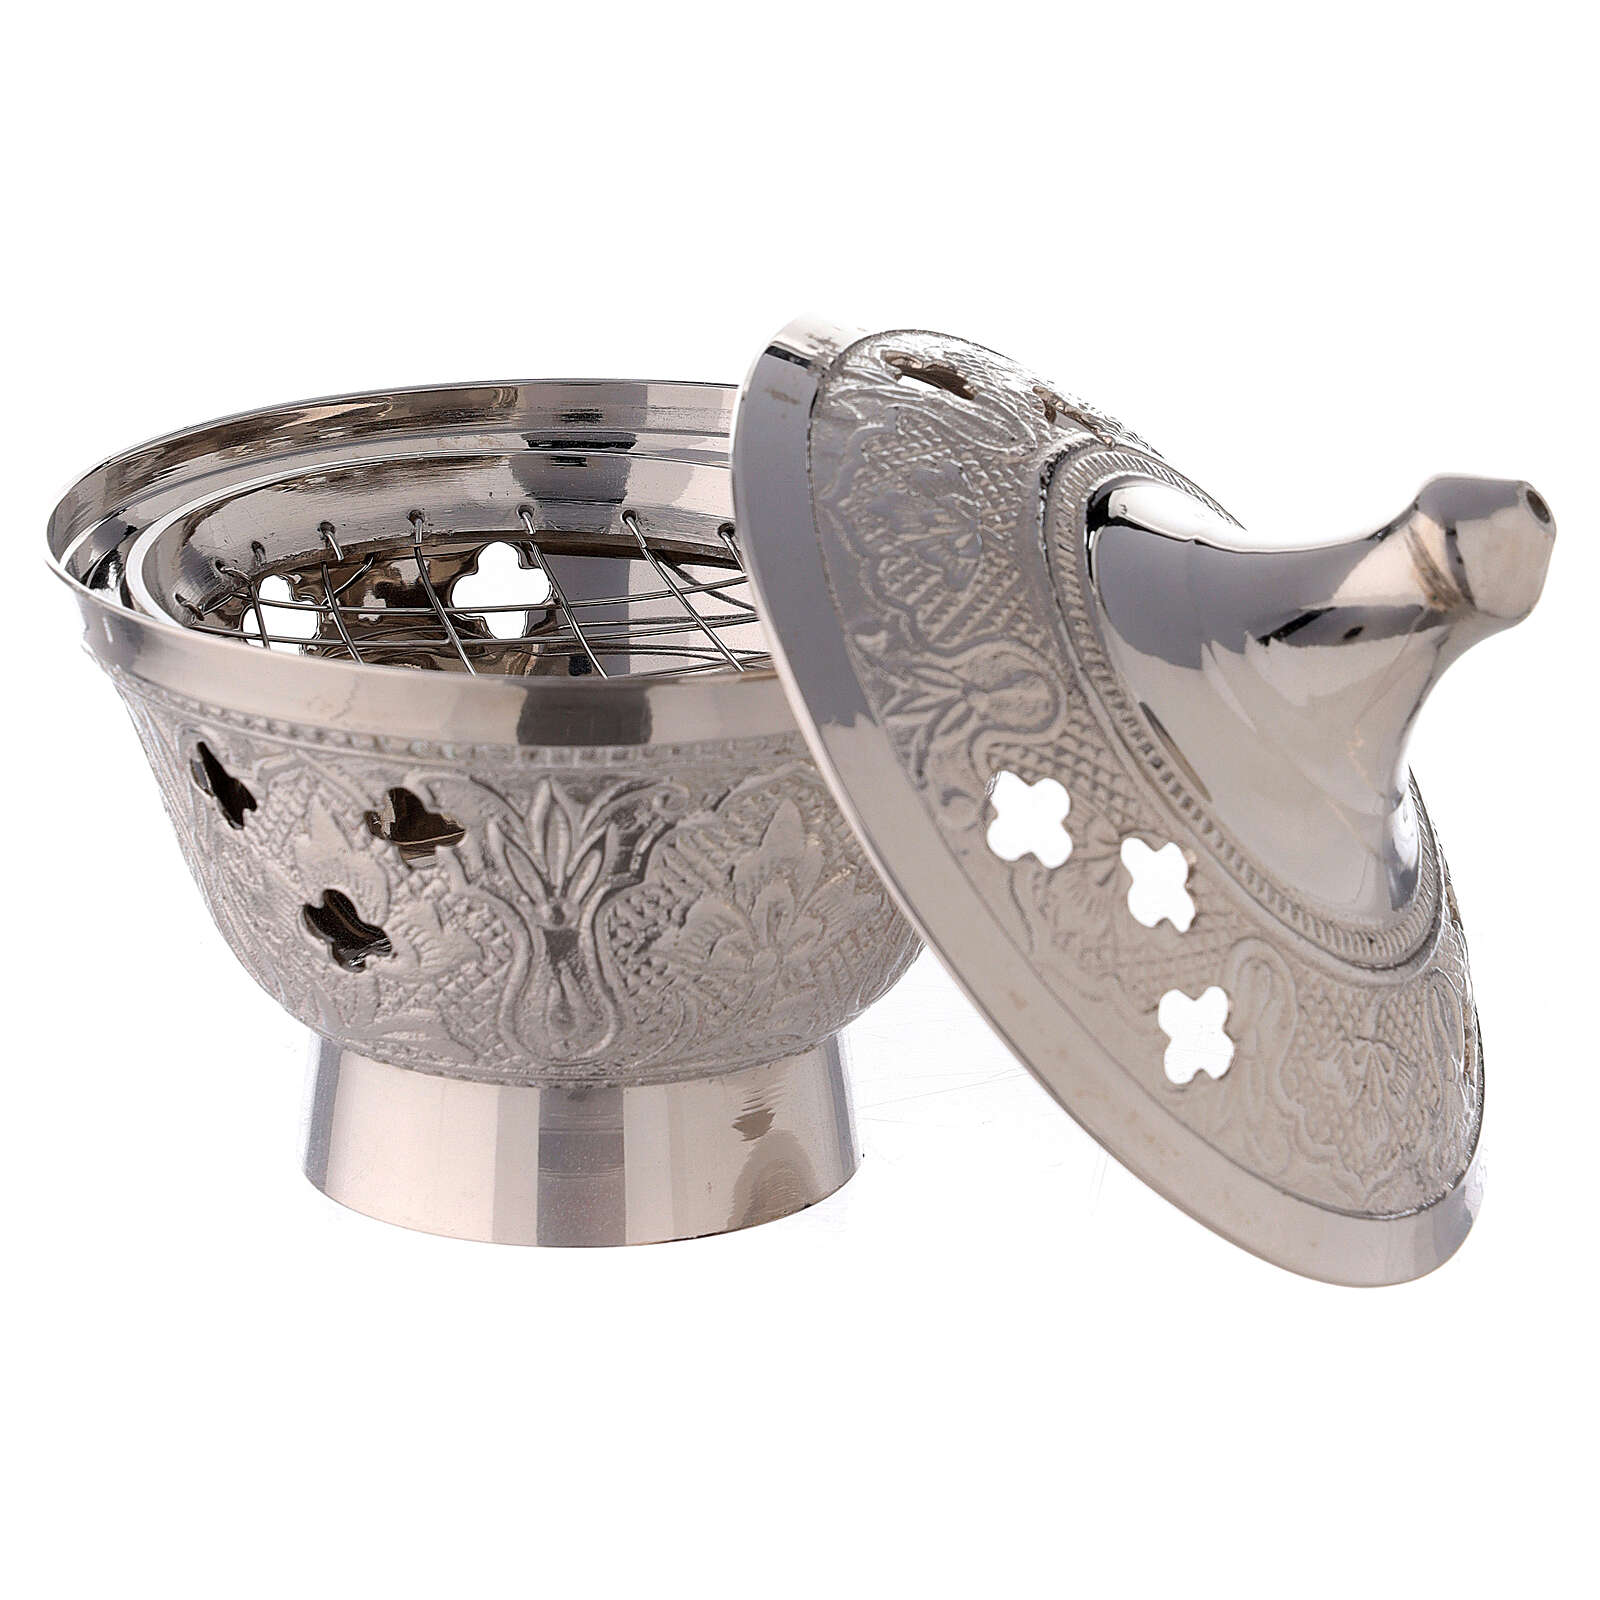 Nickel-plated brass incense burner with engraved decorations 4 in 3